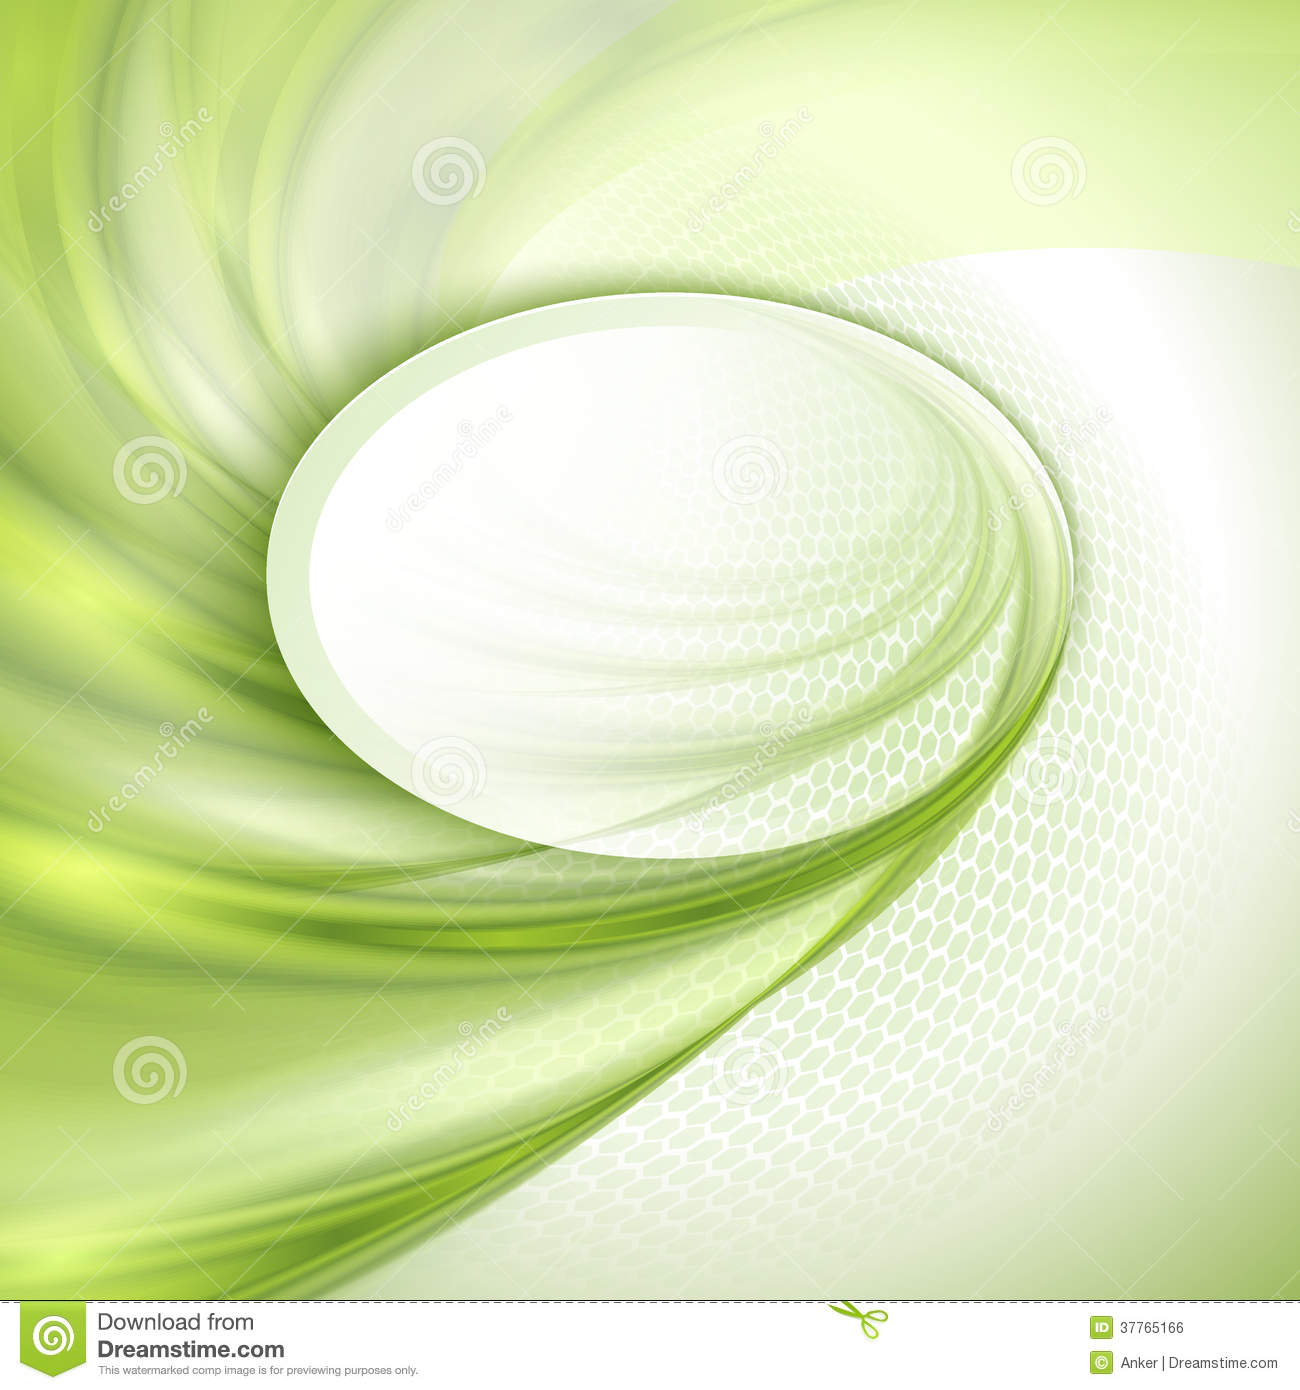 Abstract Green Swirl Background Stock Vector - Image: 37765166 Green And White Swirl Backgrounds